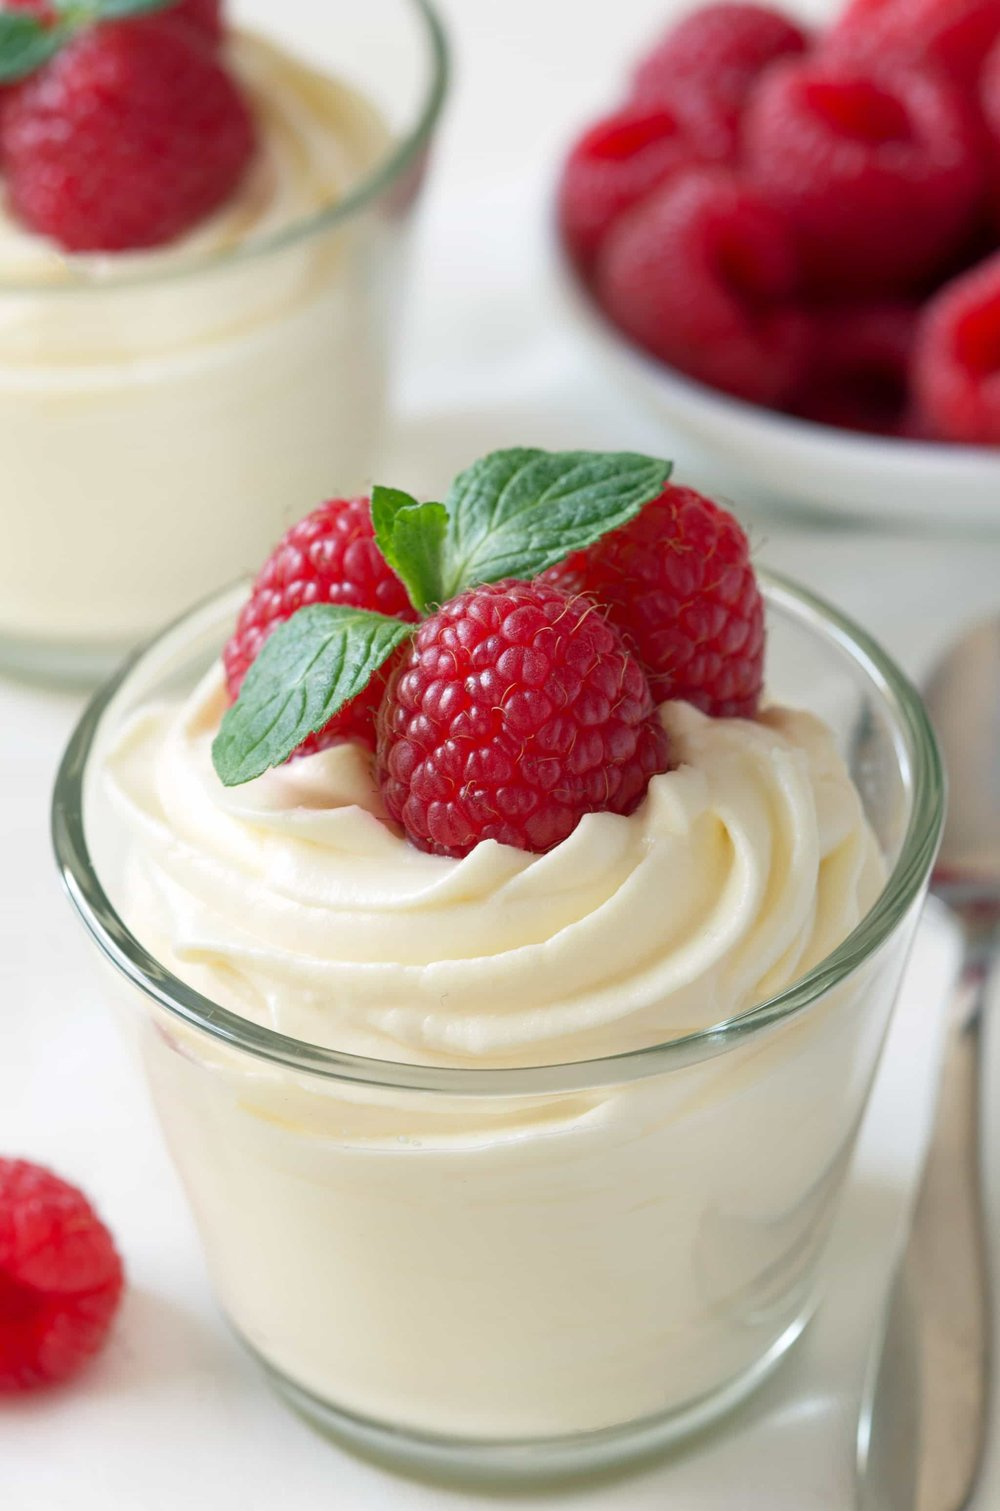 white-chocolate-mousse-2-2048-1.jpg